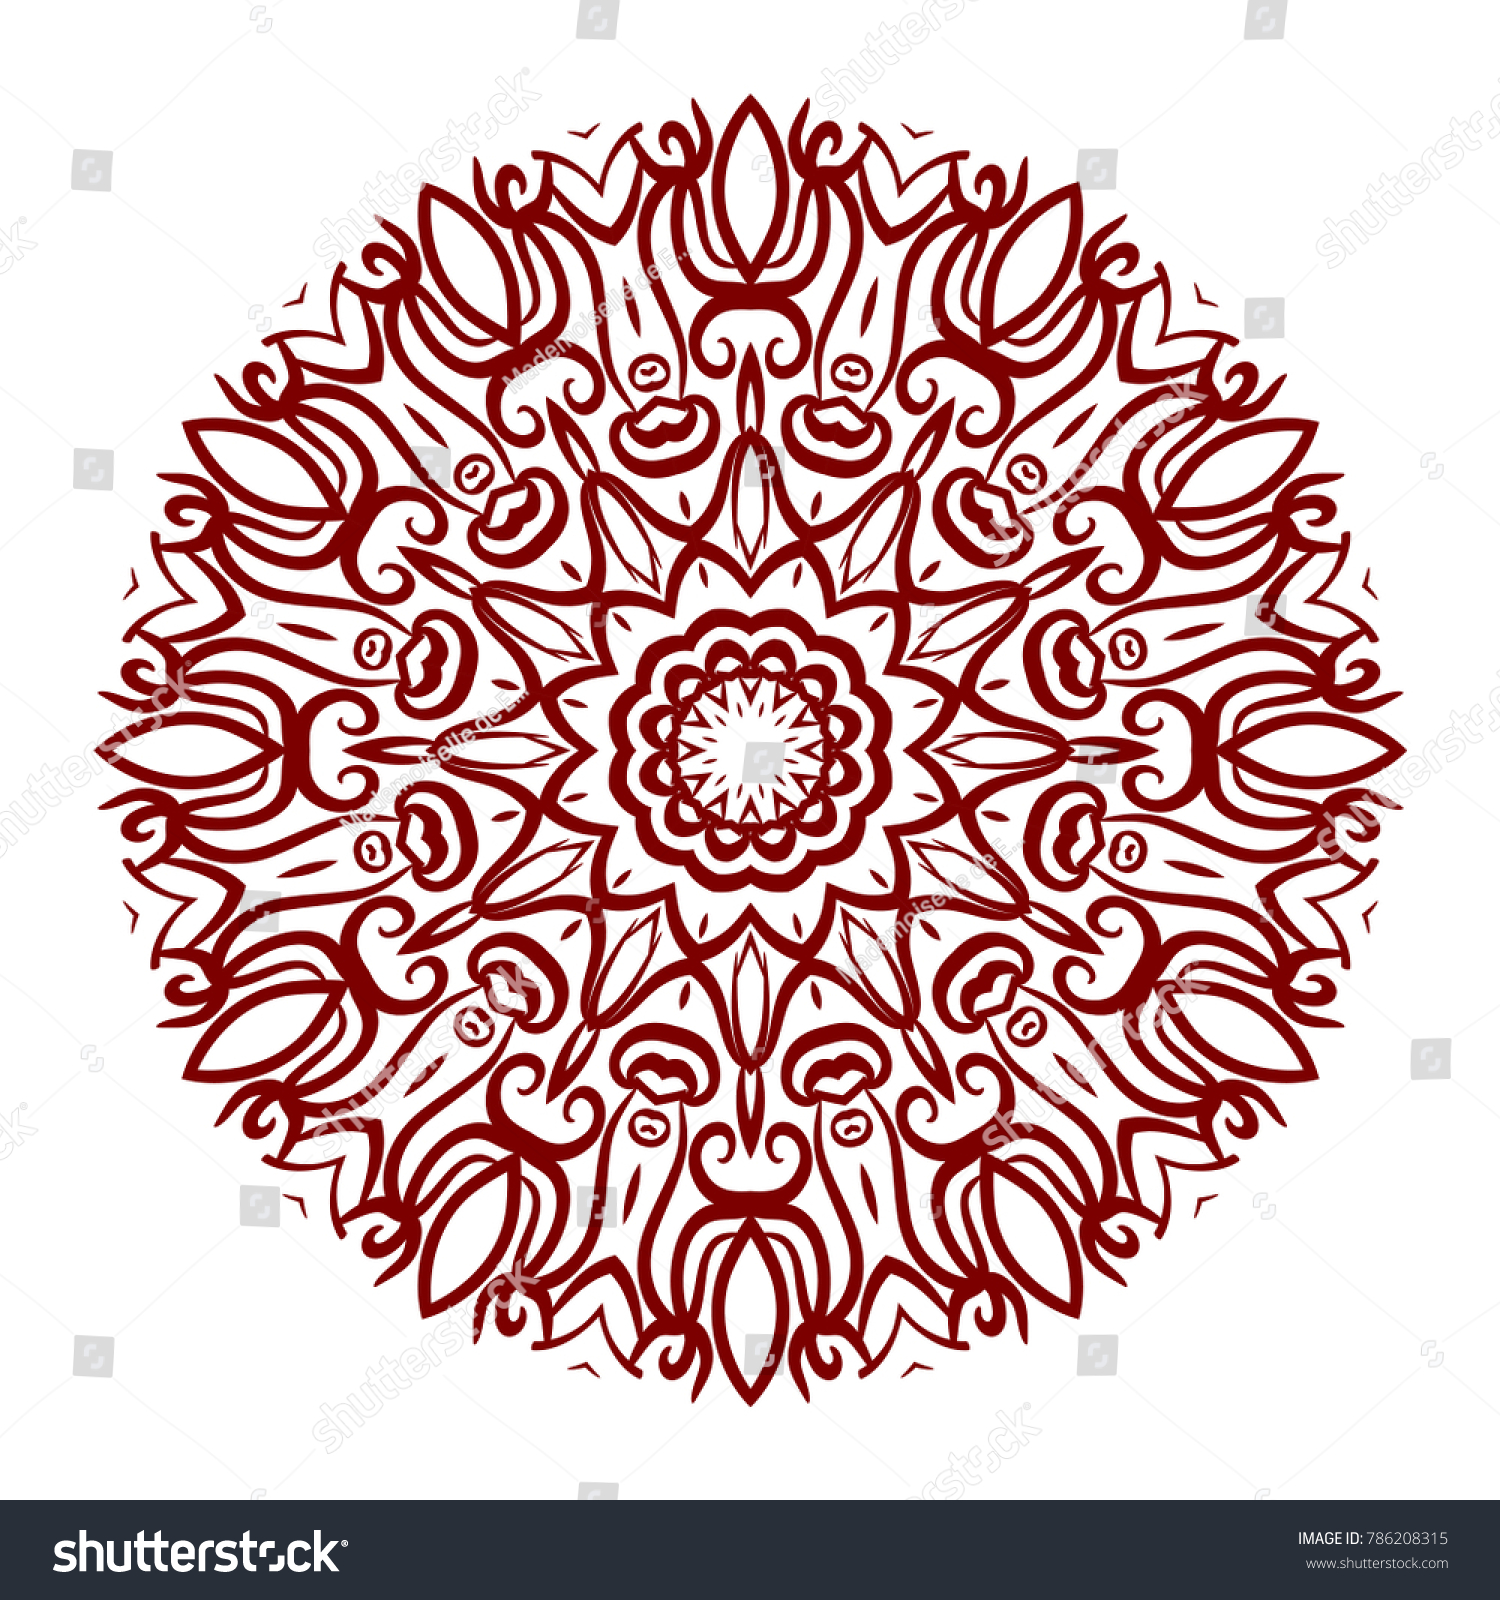 Abstract Flower Design Mandala Decorative Round Stock Vector ...